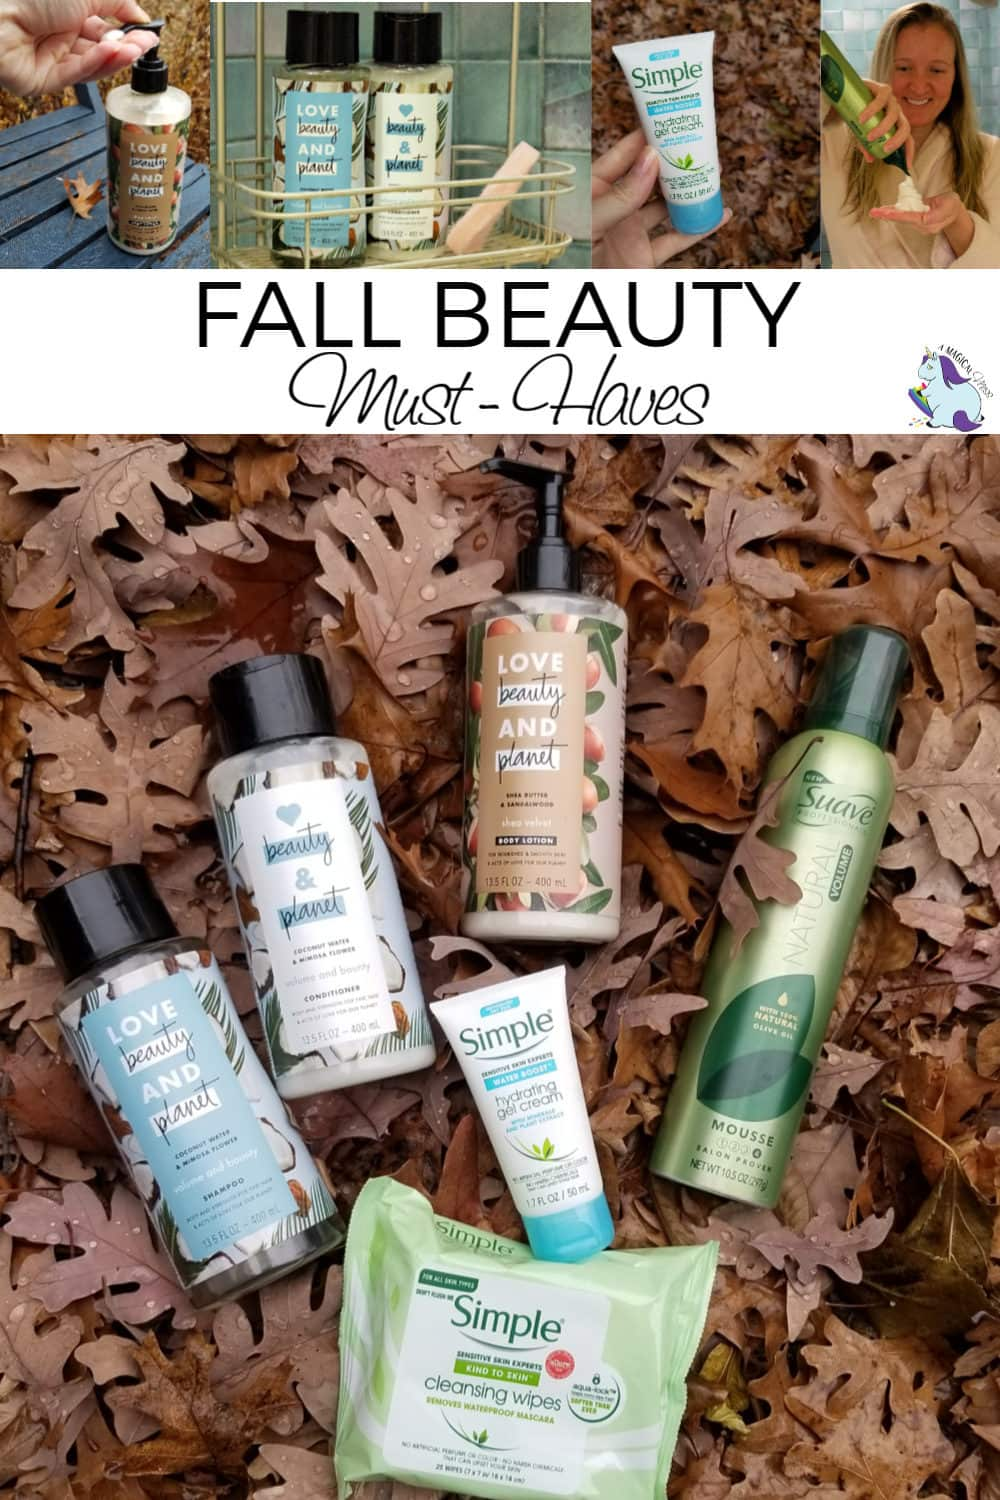 Fall Beauty Must - Haves all found at Jewel-Osco!